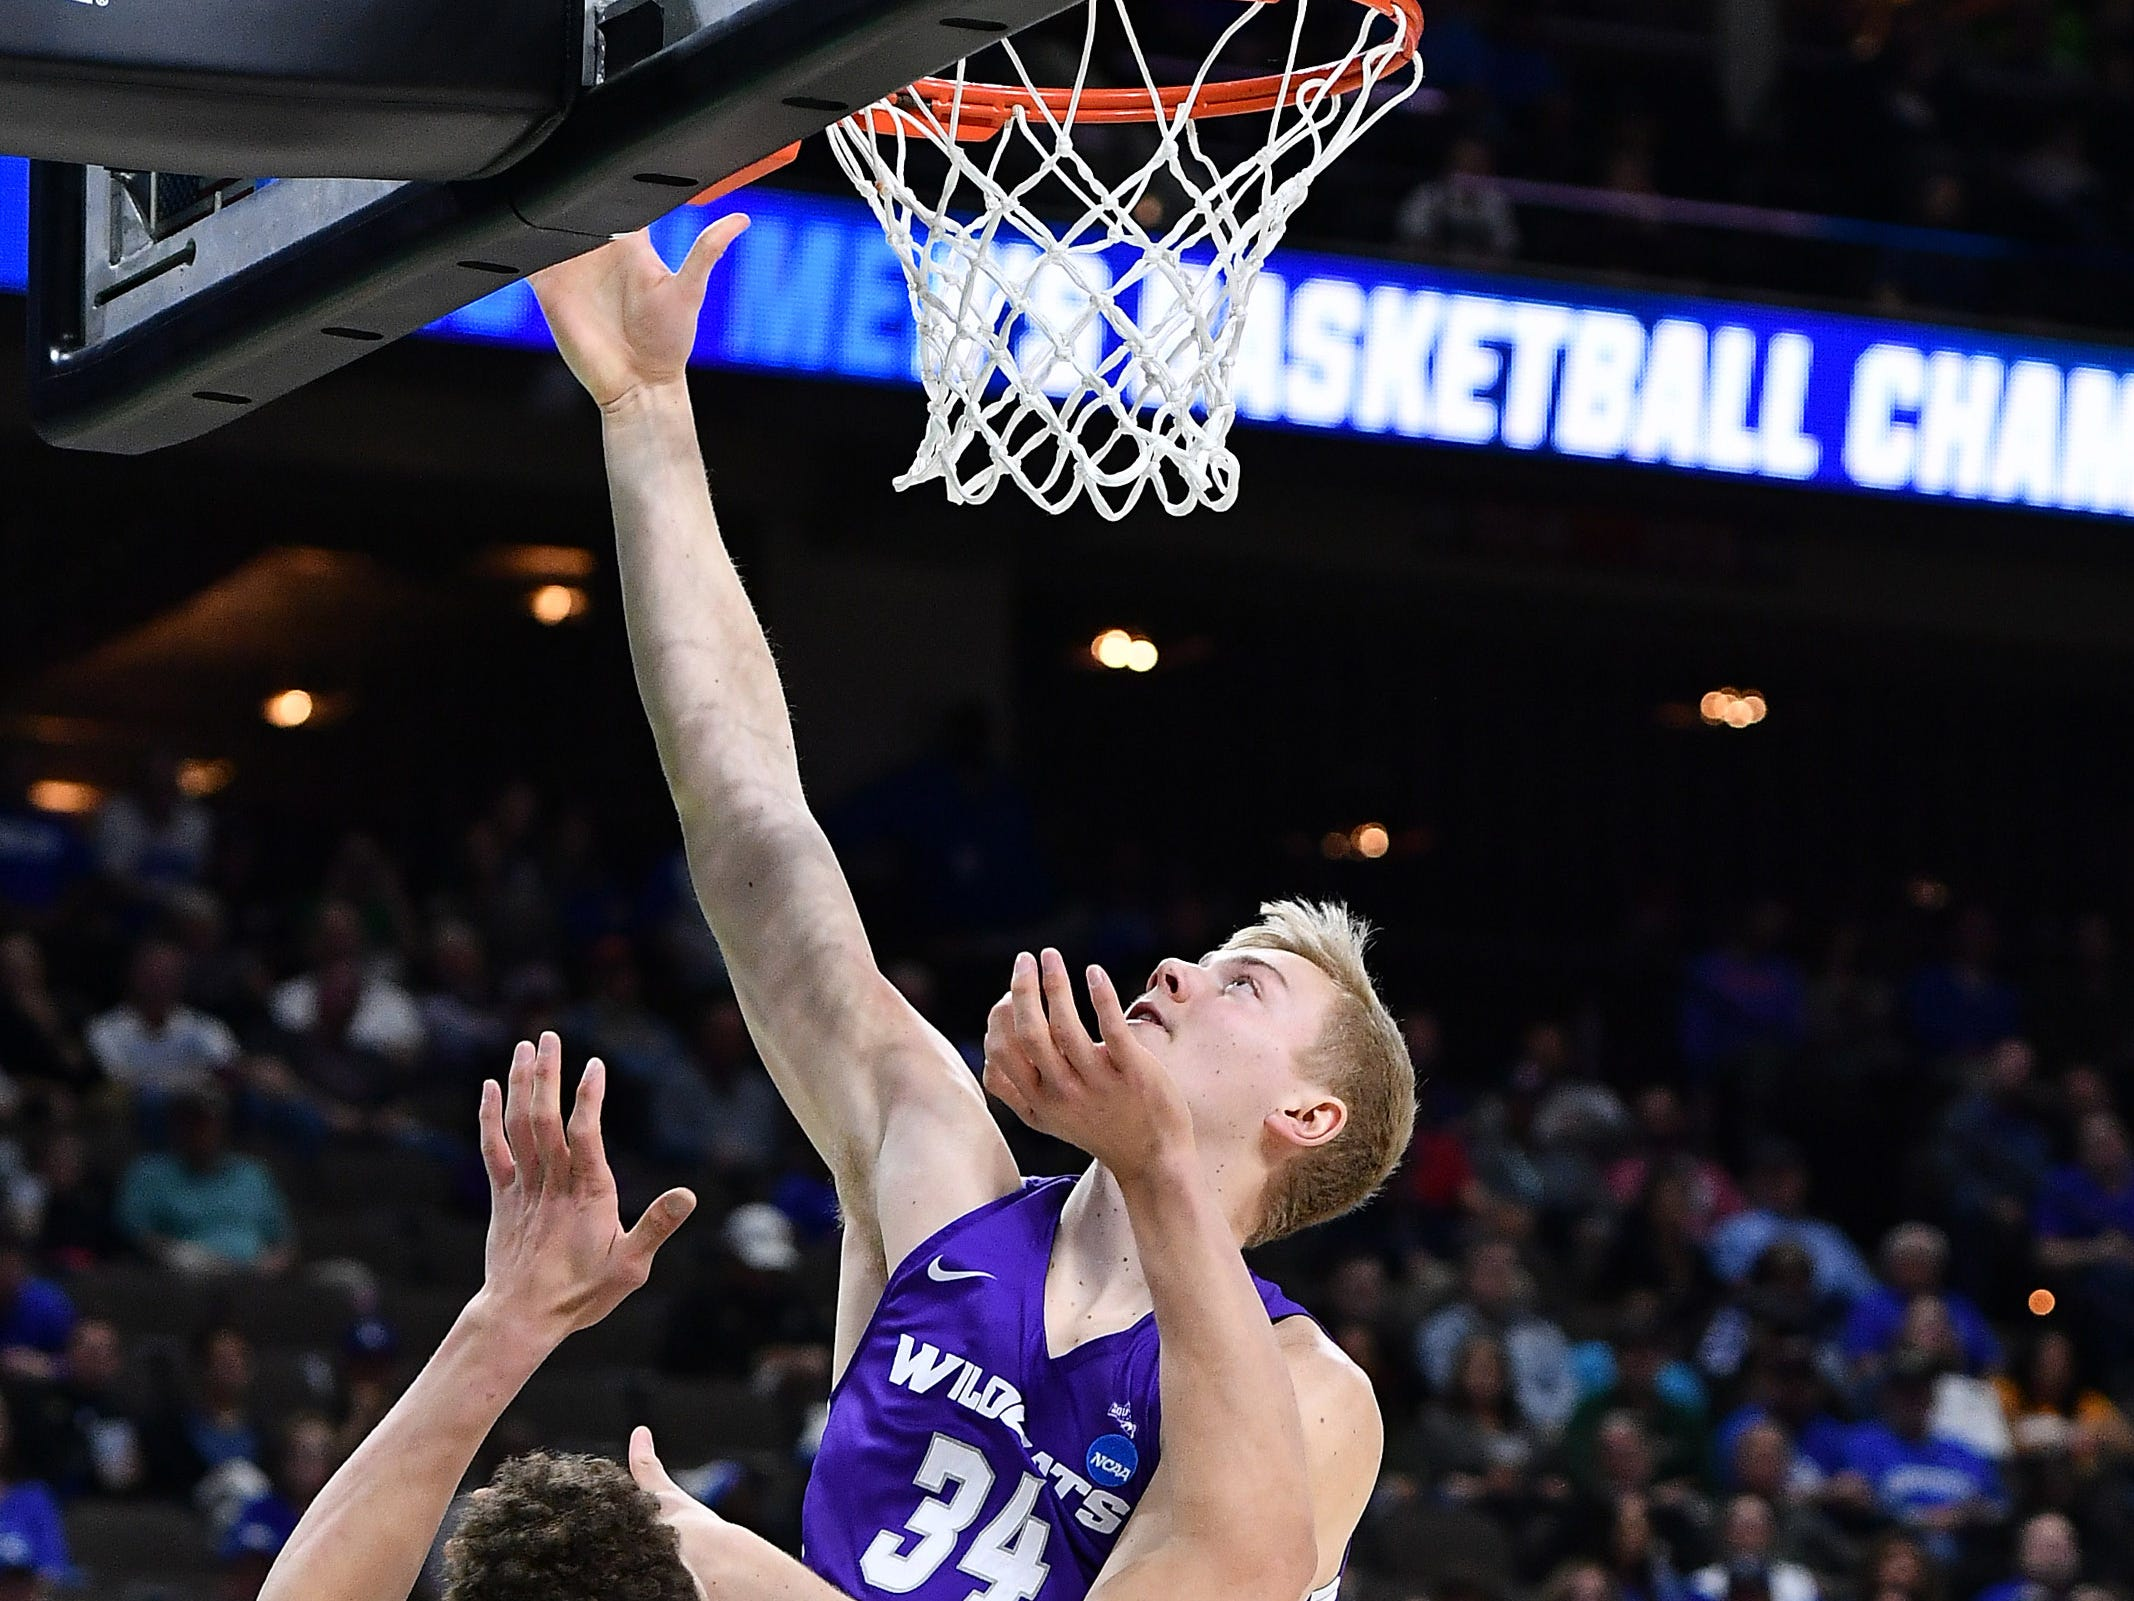 Mar 21, 2019; Jacksonville, FL, USA; Abilene Christian Wildcats center Kolton Kohl (34) shoots the ball over Kentucky Wildcats forward Reid Travis (22) during the first half in the first round of the 2019 NCAA Tournament at Jacksonville Veterans Memorial Arena. Mandatory Credit: John David Mercer-USA TODAY Sports